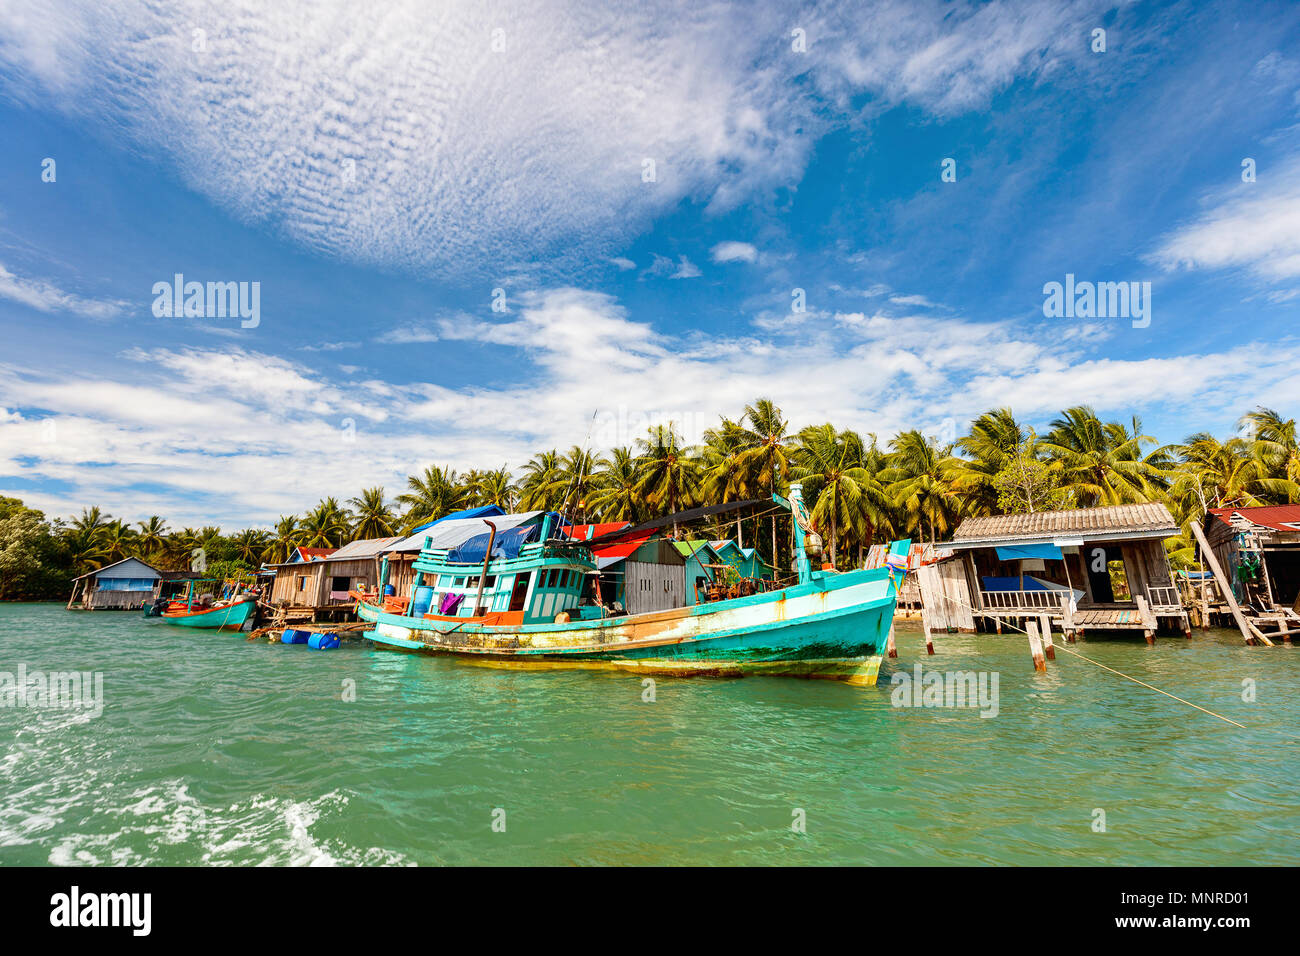 Traditional floating village on Koh Rong island in Cambodia - Stock Image